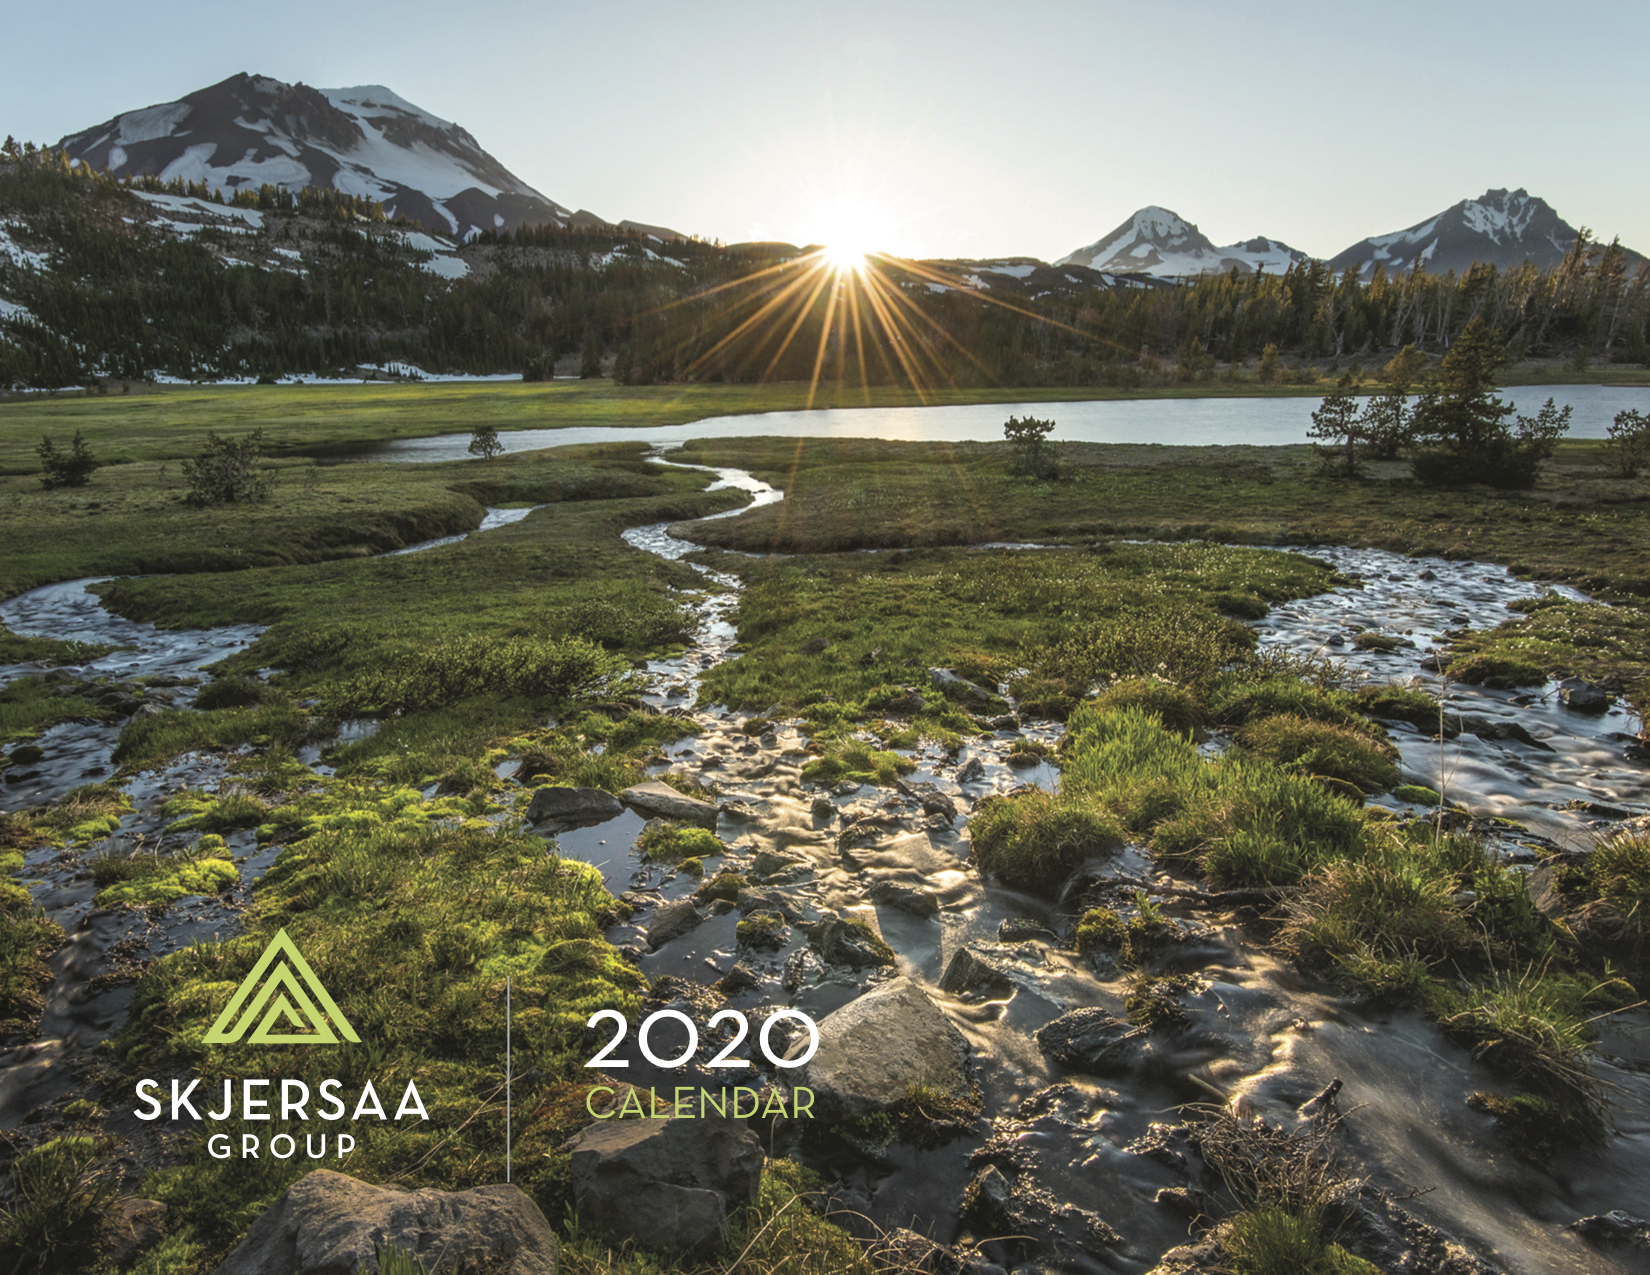 Cover of the 2020 Skjersaa Group annual print calendar featuring landscape photo of the Three Sisters peaks